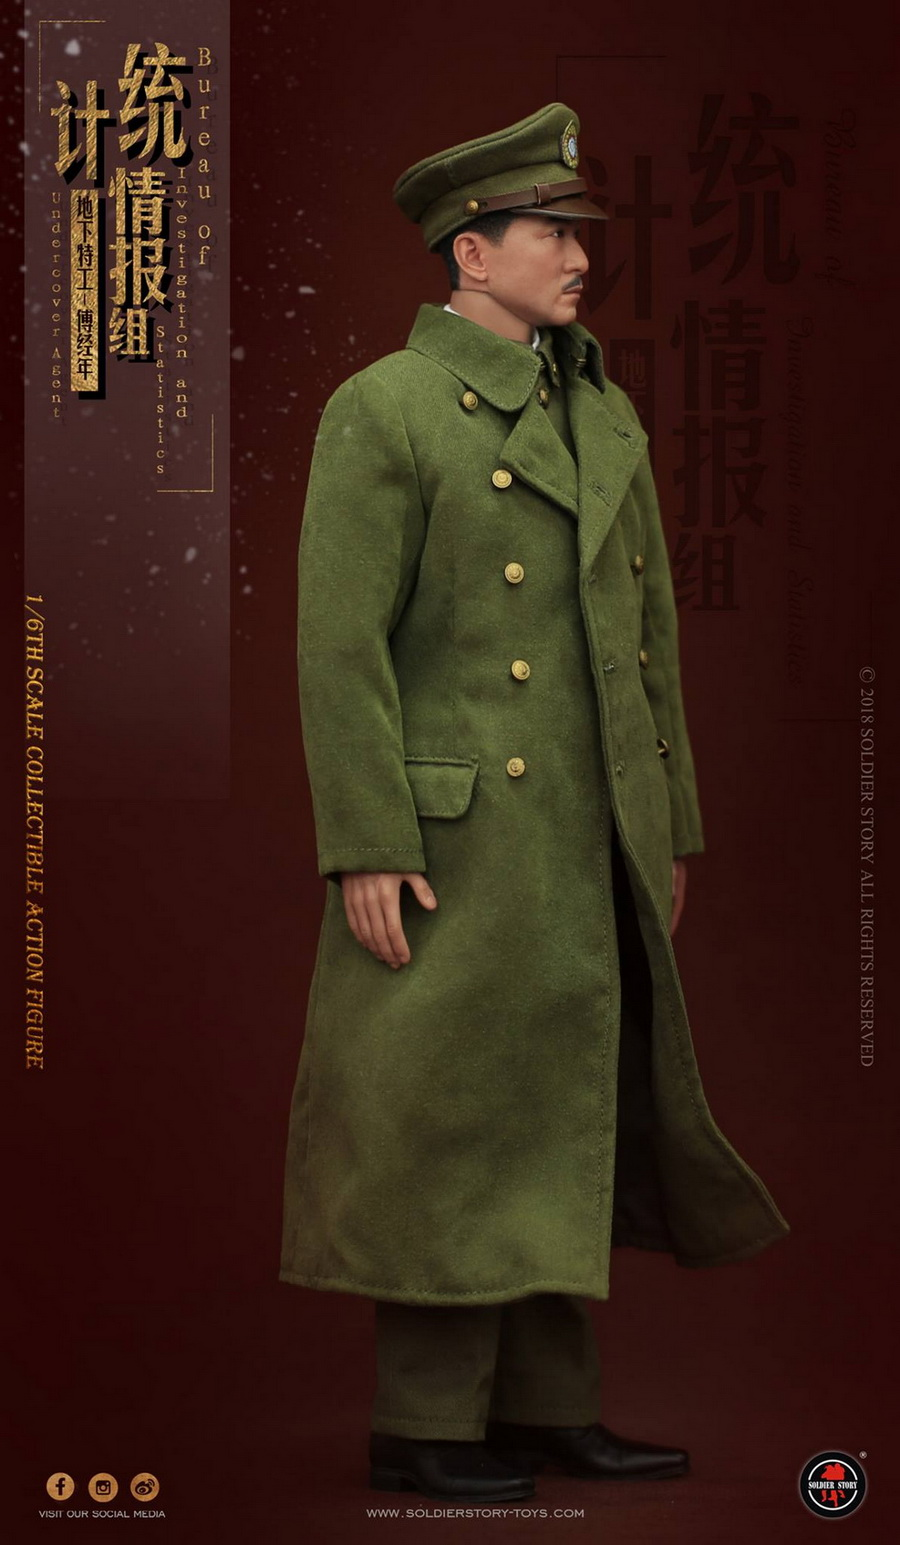 SoldierStory - NEW PRODUCT: SoldierStory new product: 1/6 World War II statistical intelligence group underground agent Fu Jingian - Shanghai 1942 (SS113#) 790